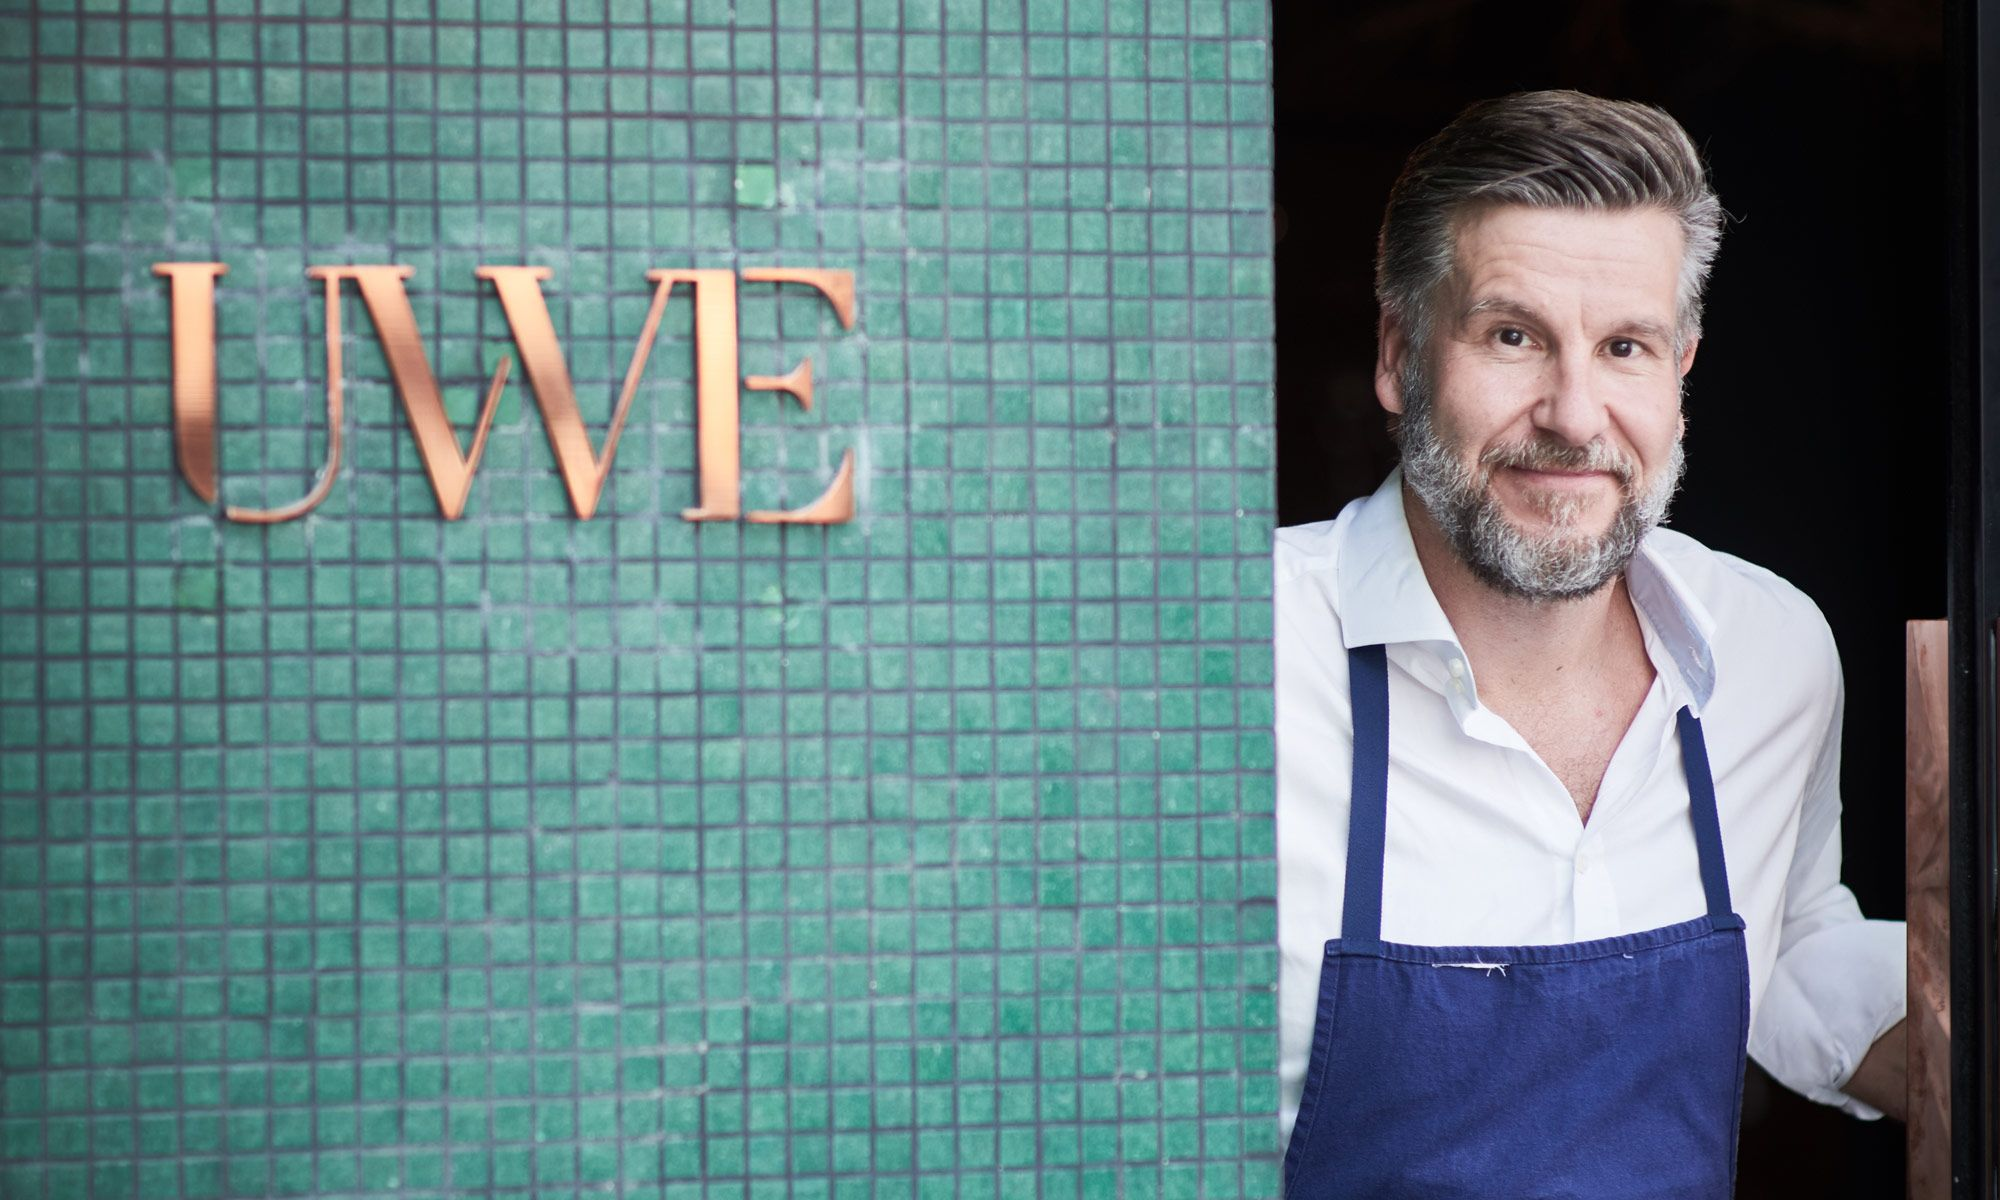 Exclusive: Uwe Opocensky Opens Up About His Eponymous Restaurant